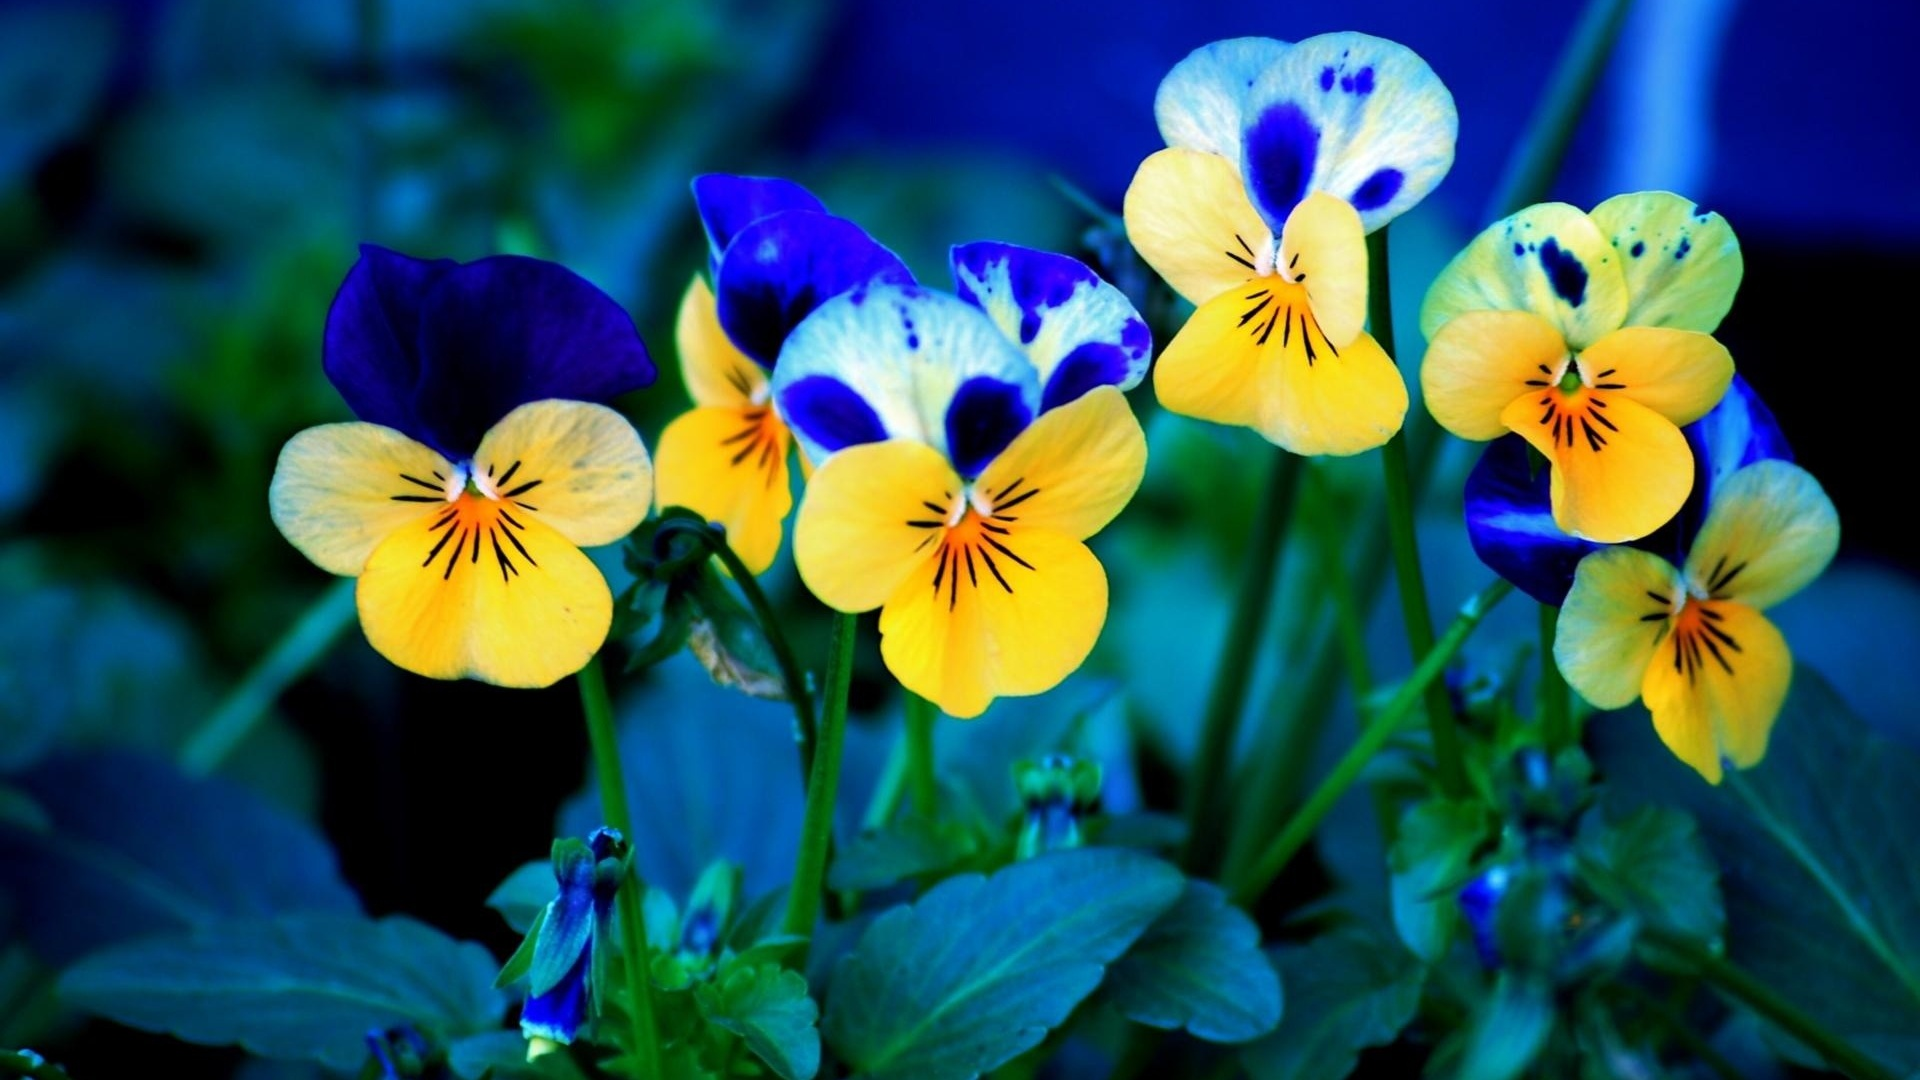 Flowers wallpaper   832342 1920x1080